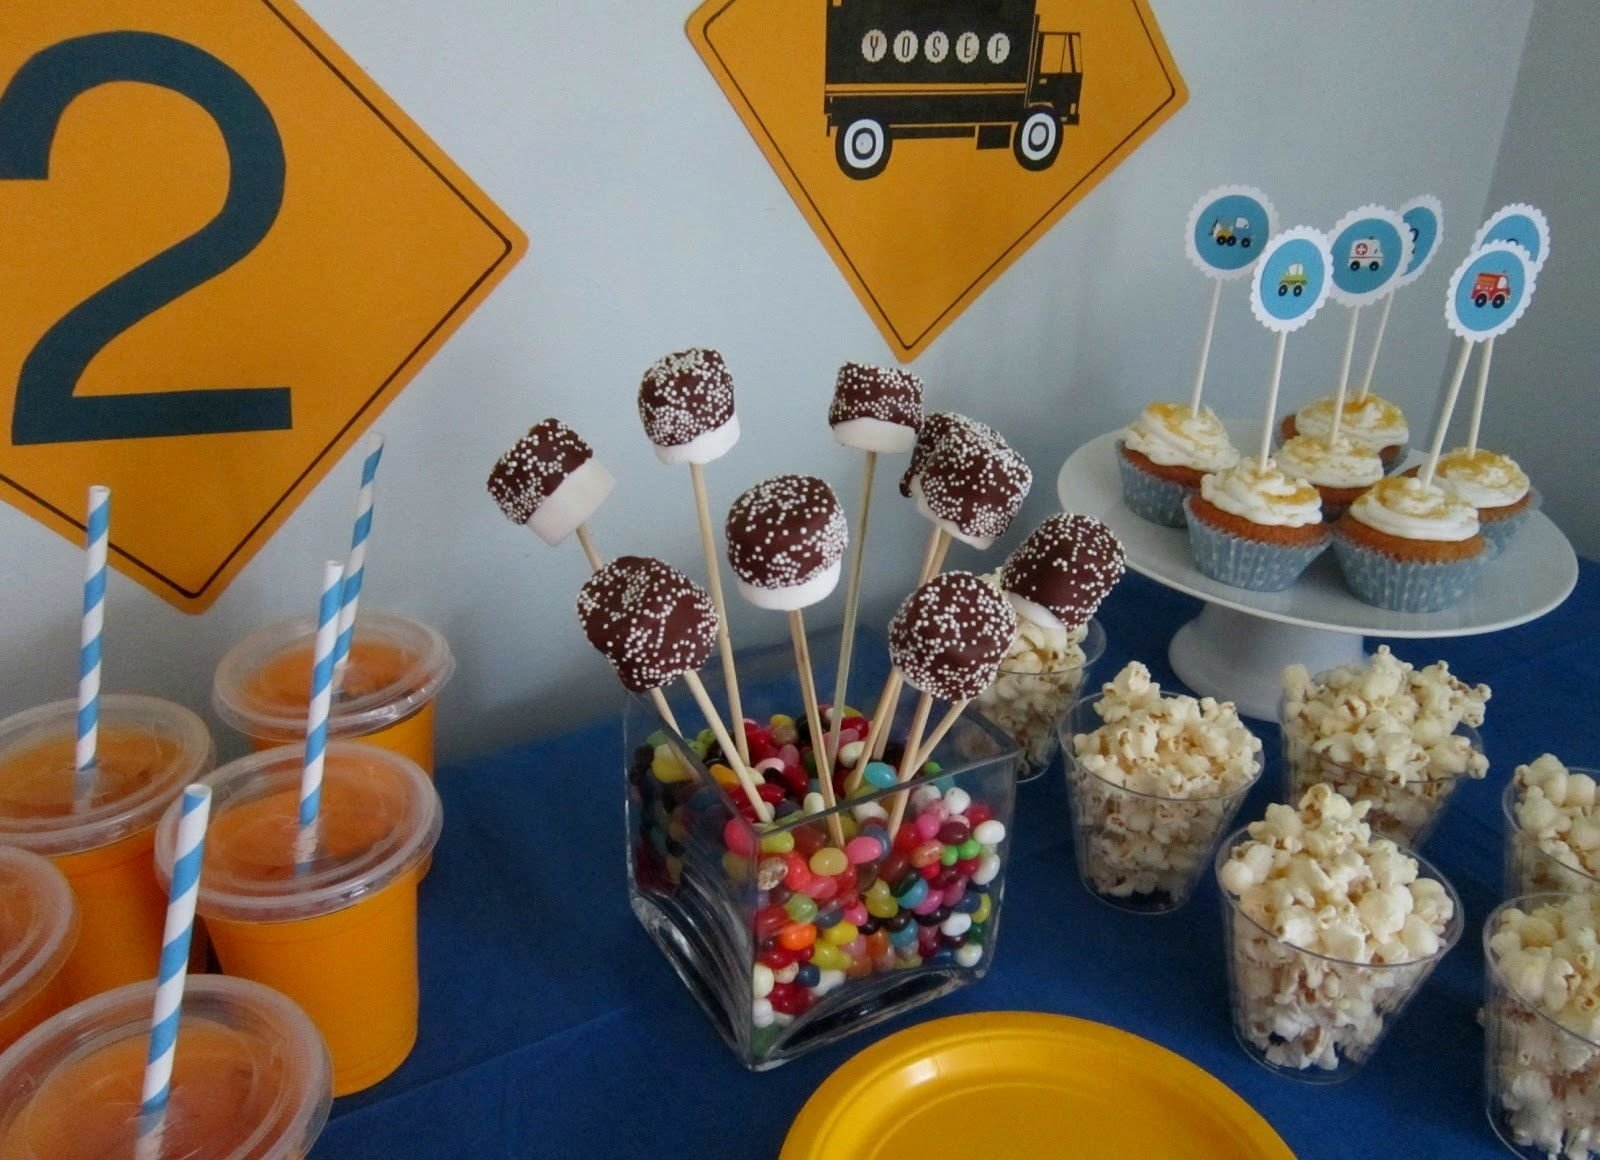 10 Famous Birthday Party Ideas For 13 Year Old Boys fancy 13 year old boy birthday party ideas picture birthday ideas